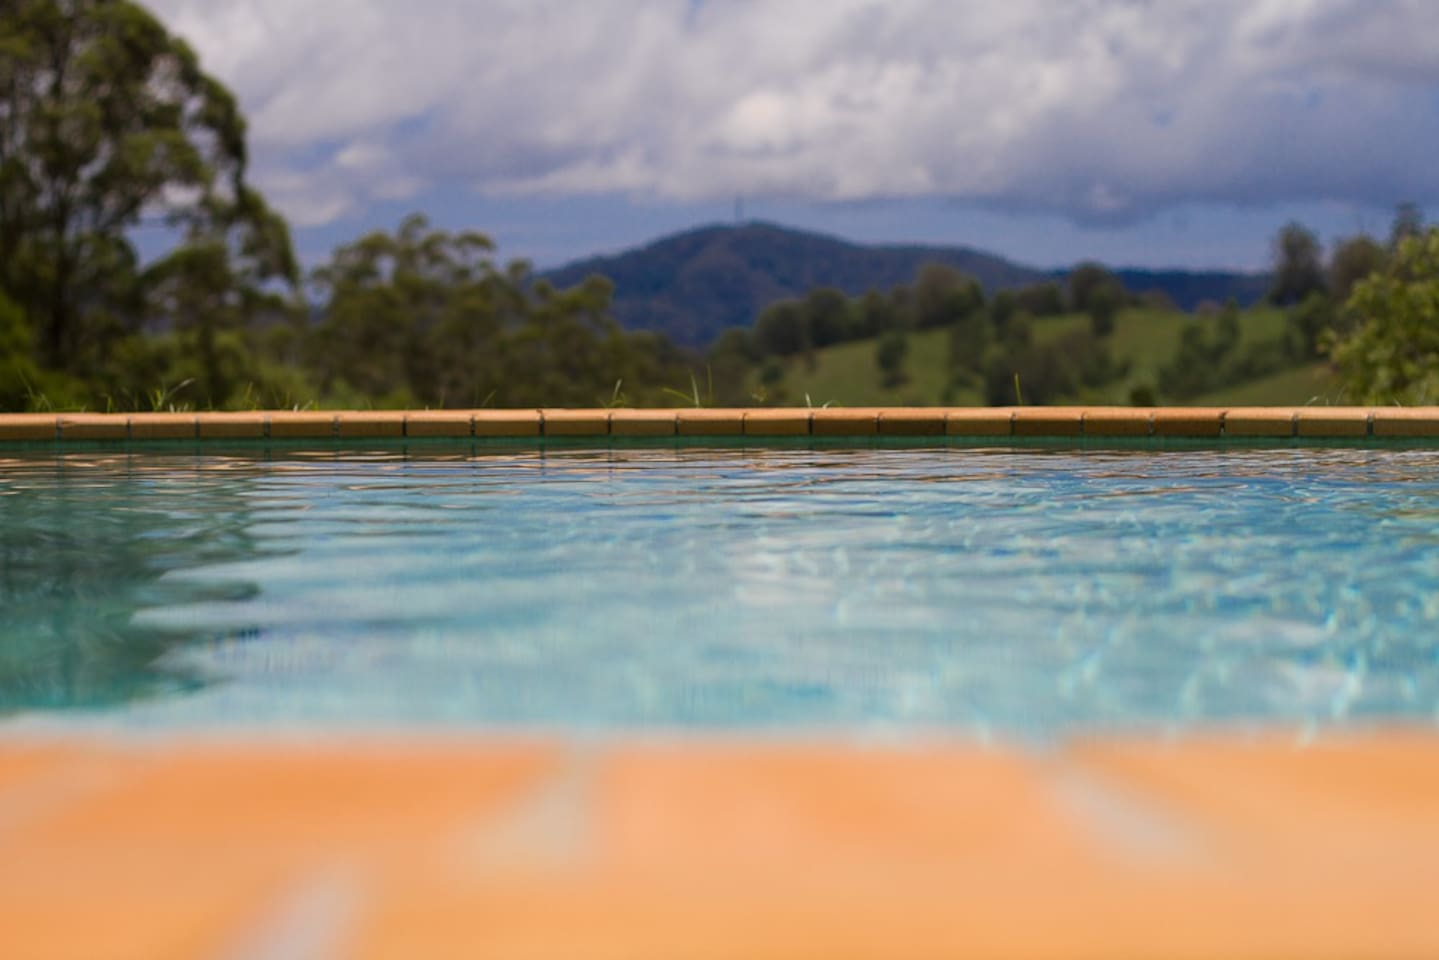 12m swimming pool with views into adjacent rural valley.